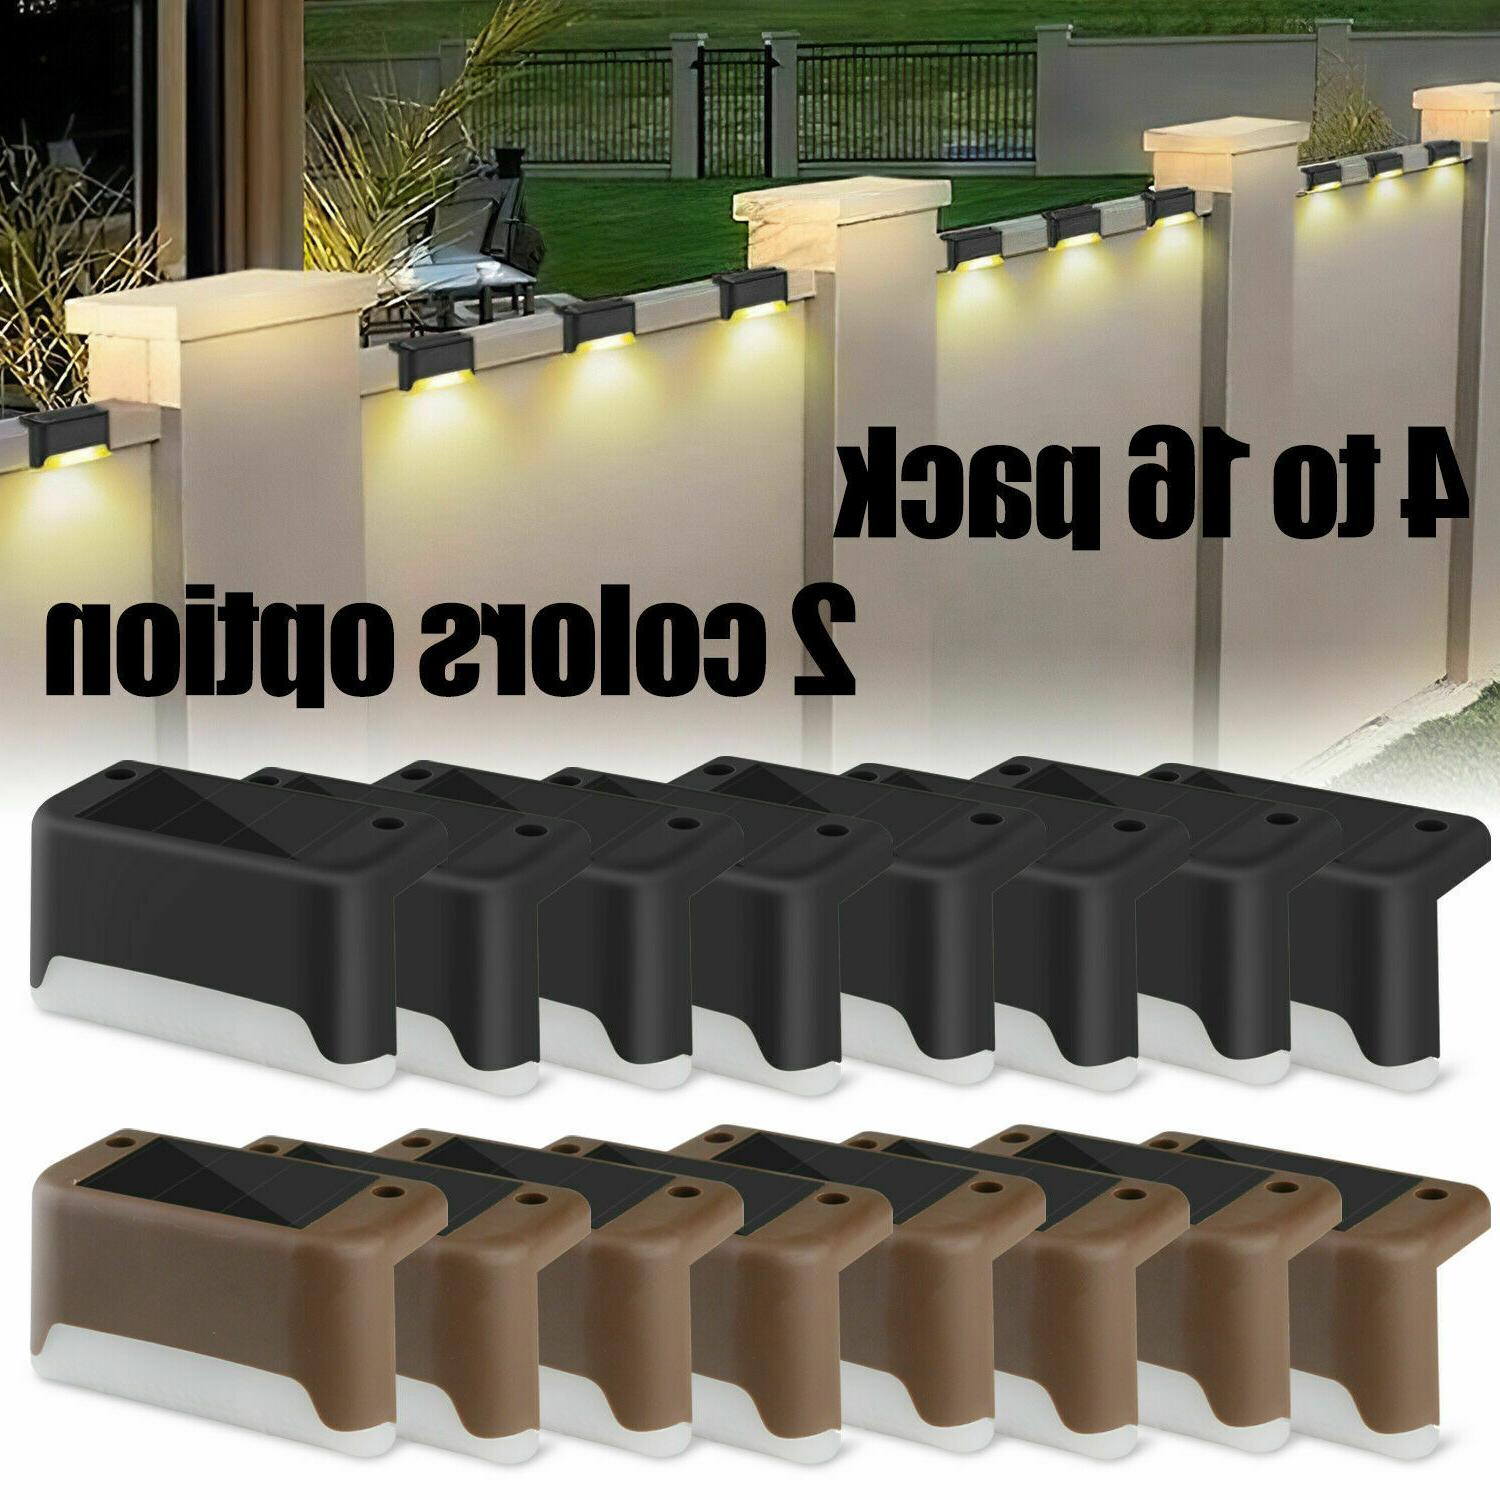 4 16pcs solar led bright deck lights